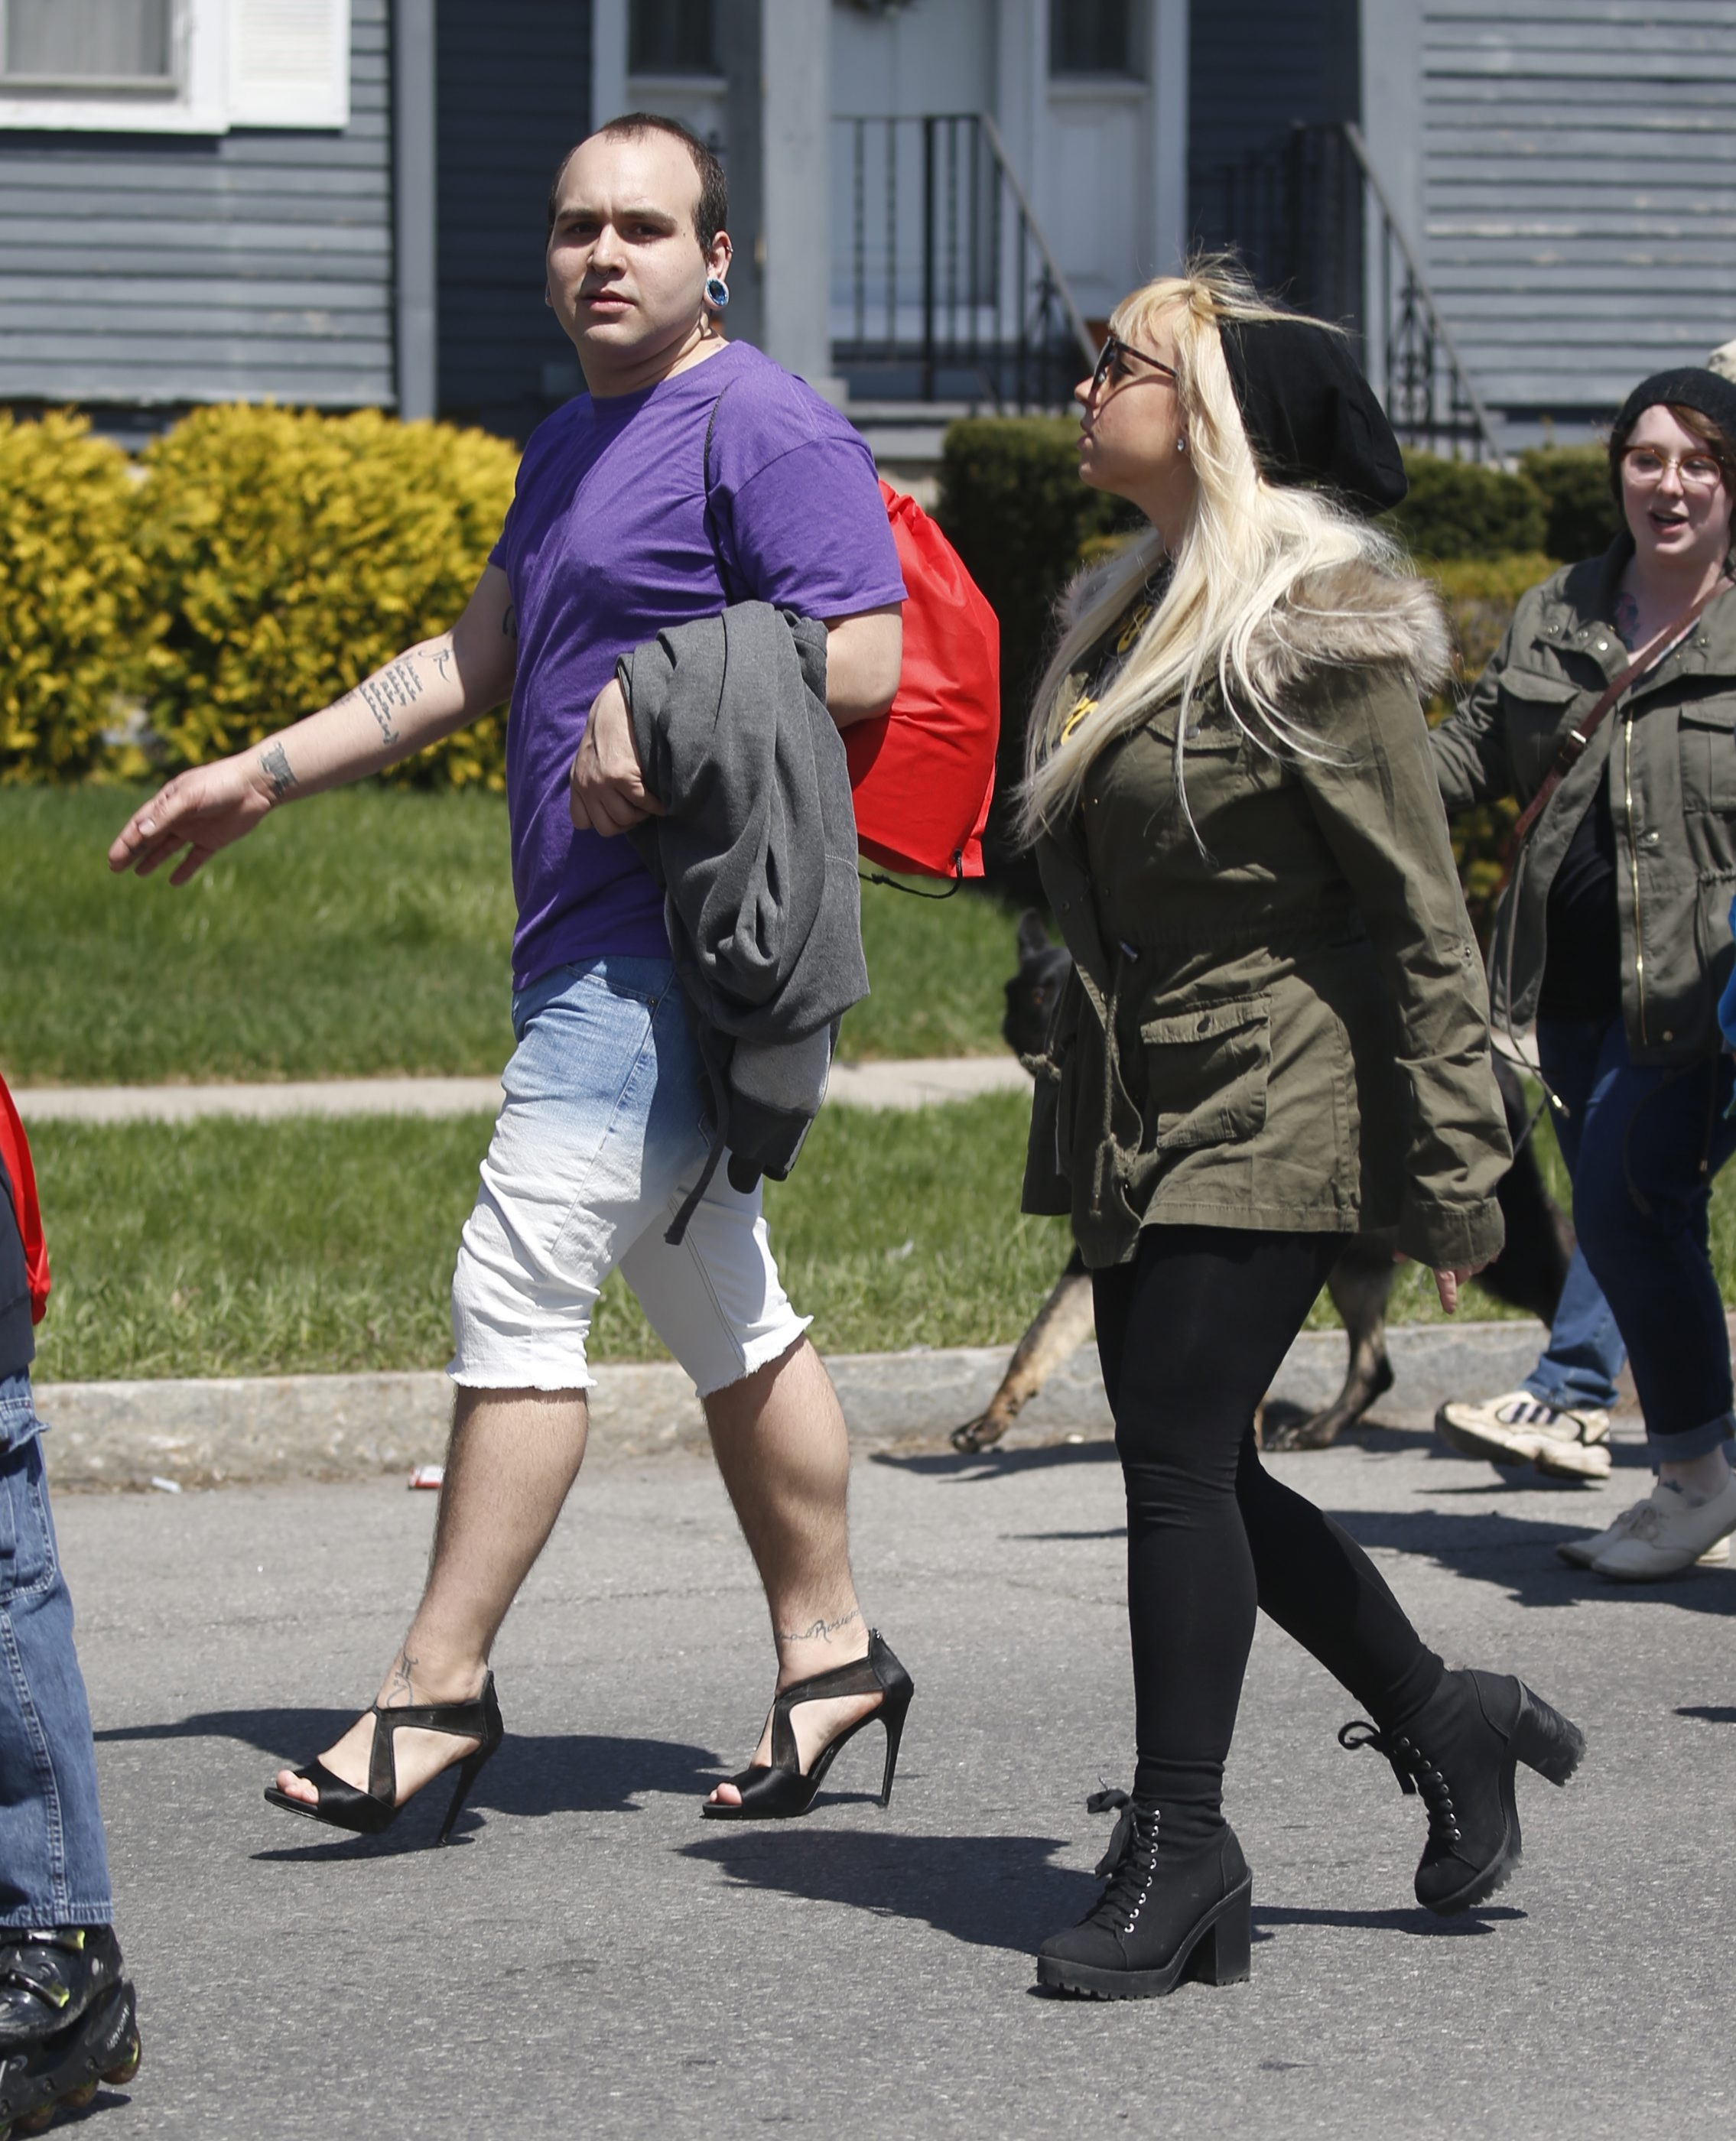 Nolan Arroyo, joined by Megan Rose, marches in high heels down  during Walk A Mile In Her Shoes to spotlight problems of domestic and sexual violence. See a photo gallery at buffalonews.com.